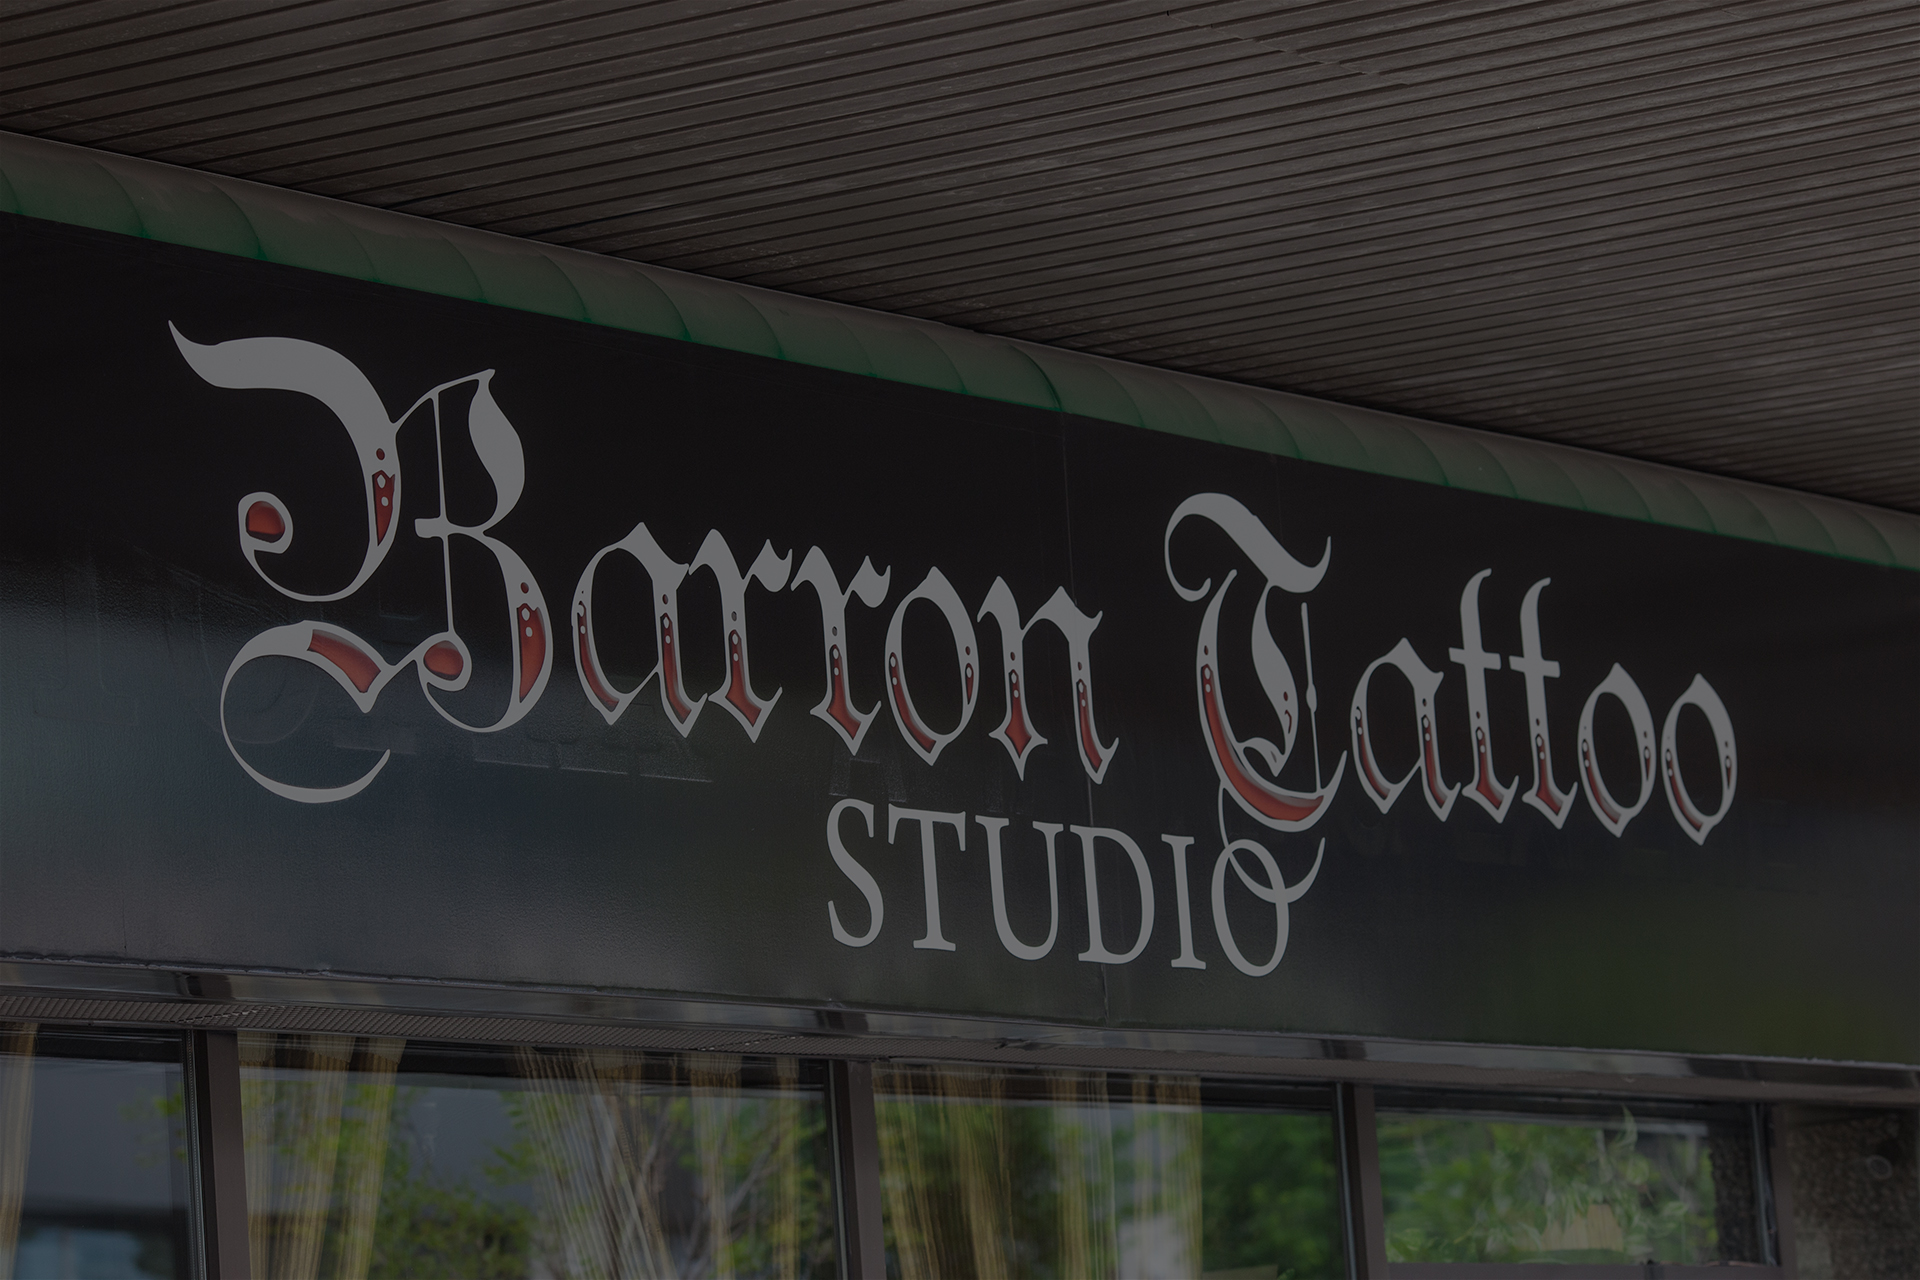 Barron Tattoo Studio